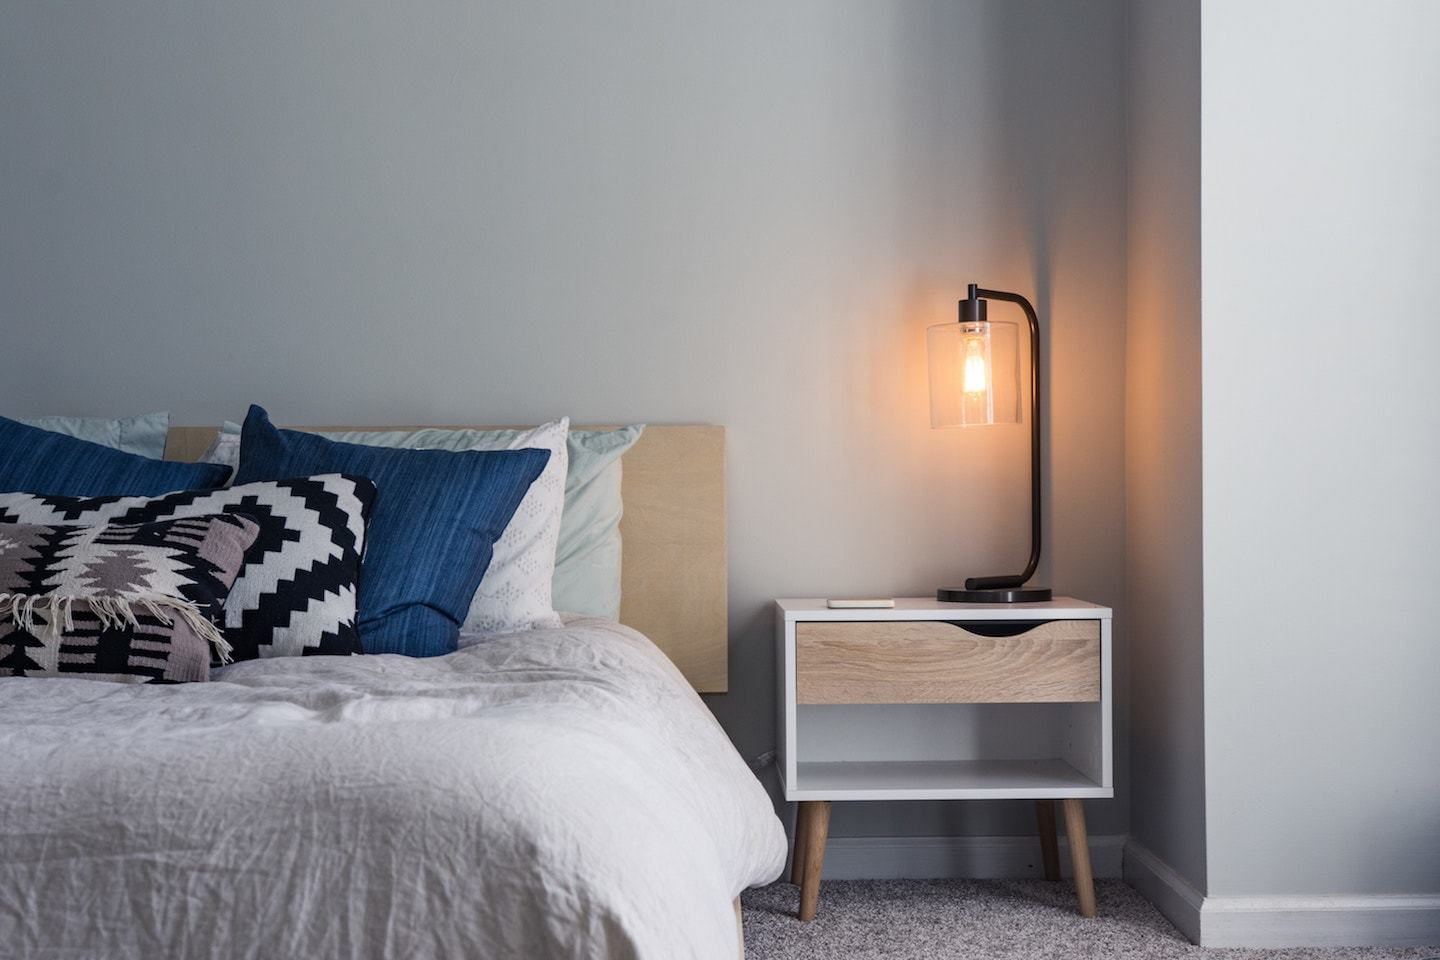 bed with side table and lamp